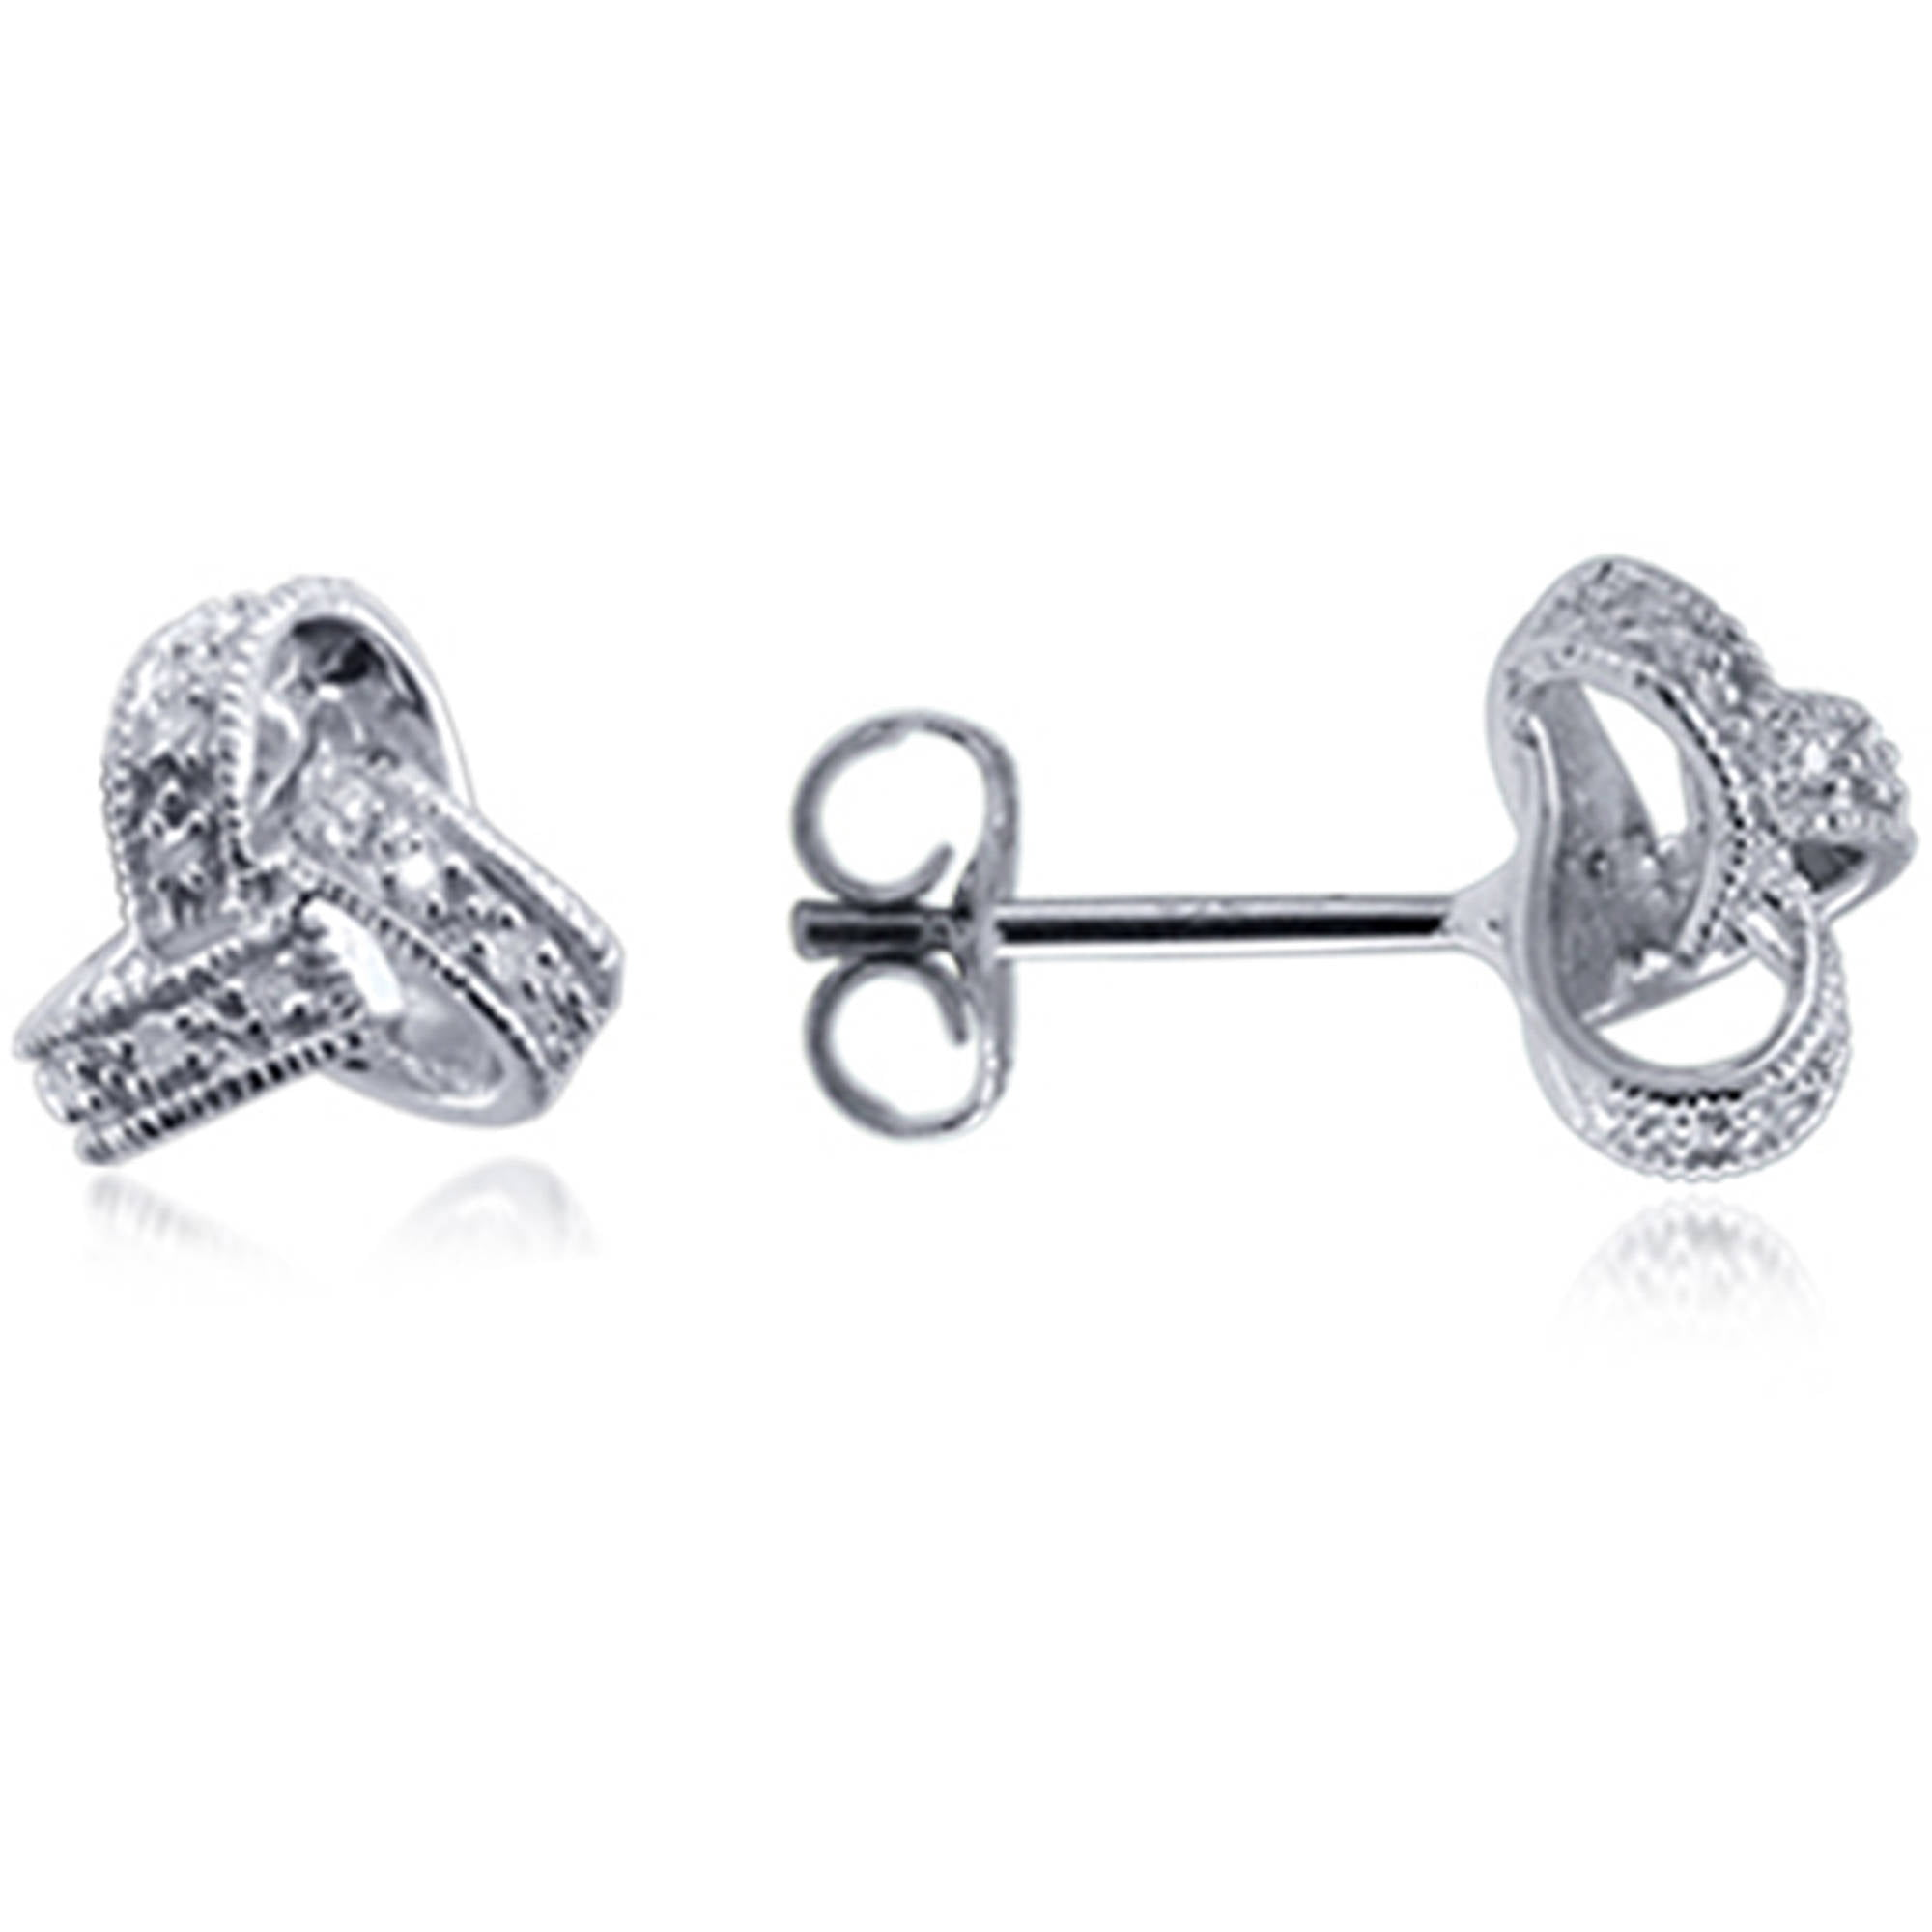 velvetcase by earrings zoom oura accent to diamond loop hover purity infinity in view earring